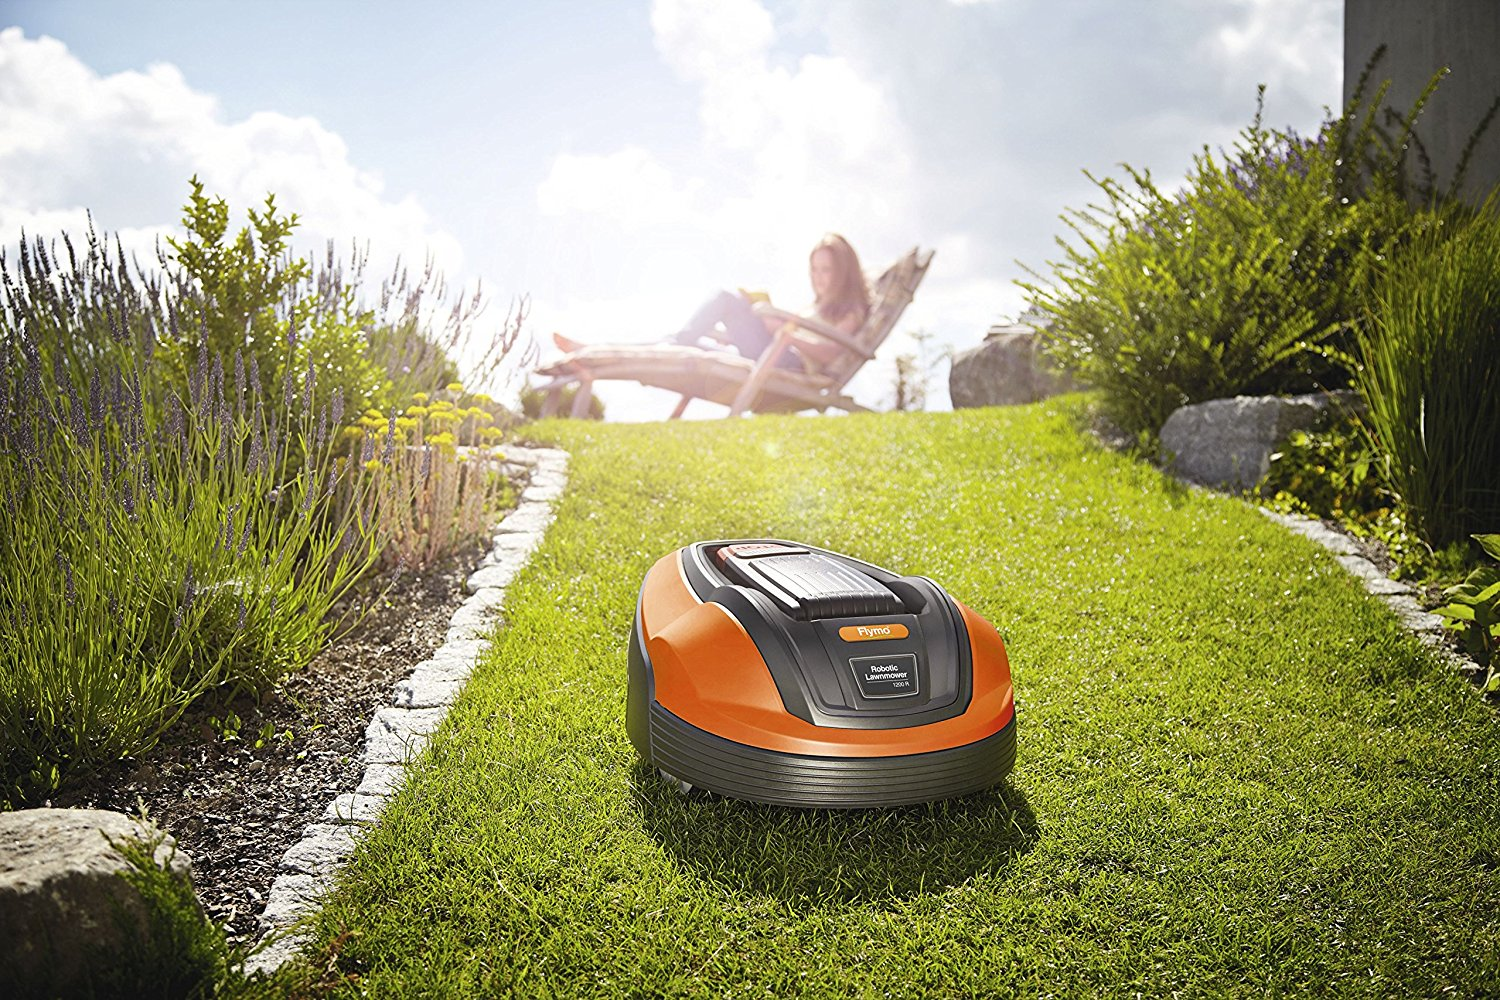 Lawn Mowers: Determine the Best Mower Type for Your Lawn